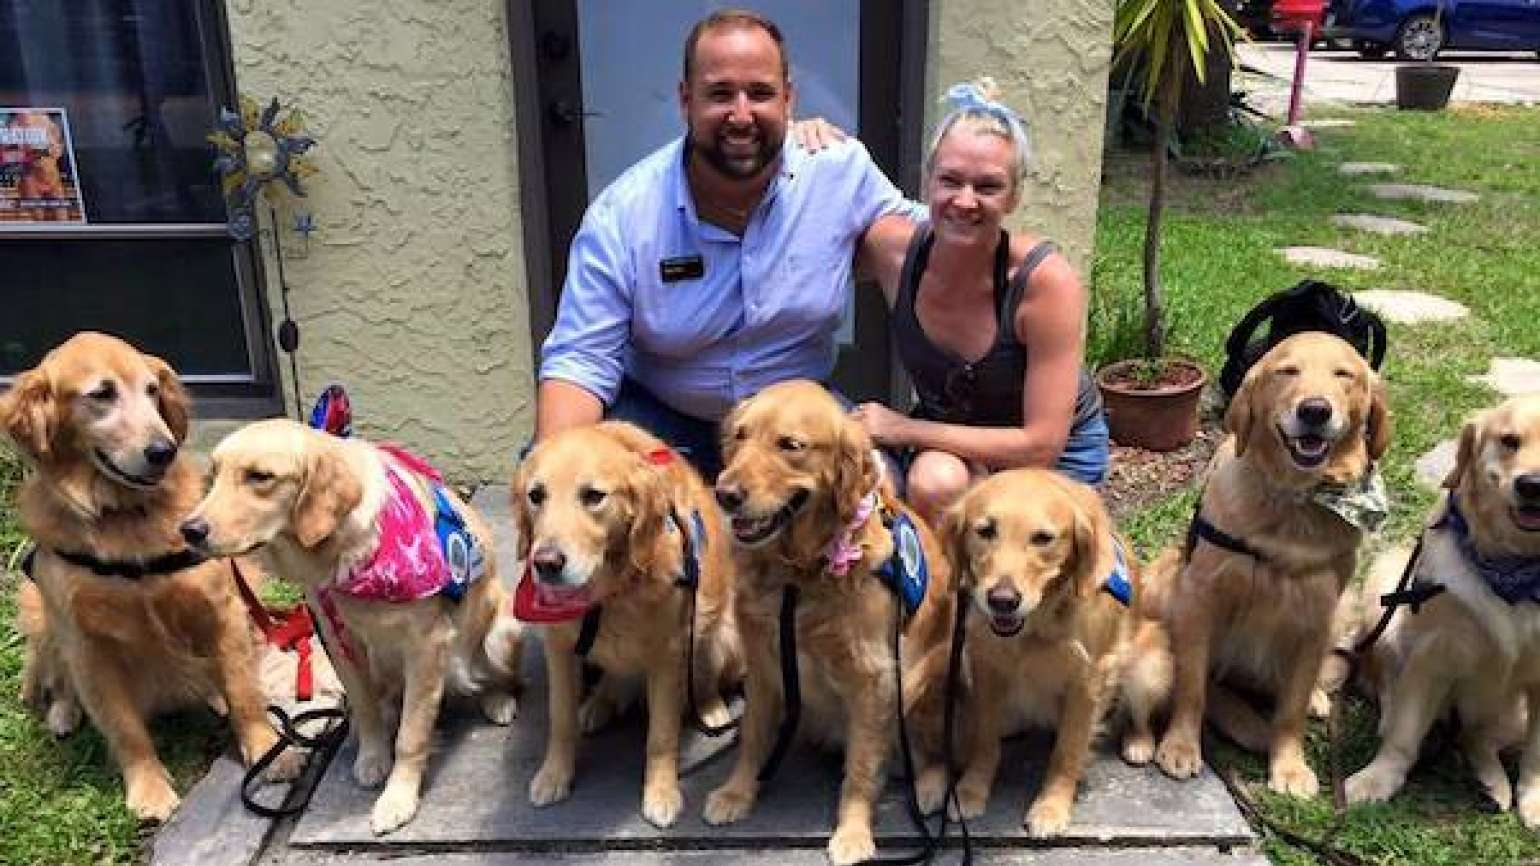 Photo: Lutheran Church Charities K-9 Comfort Dogs/Facebook